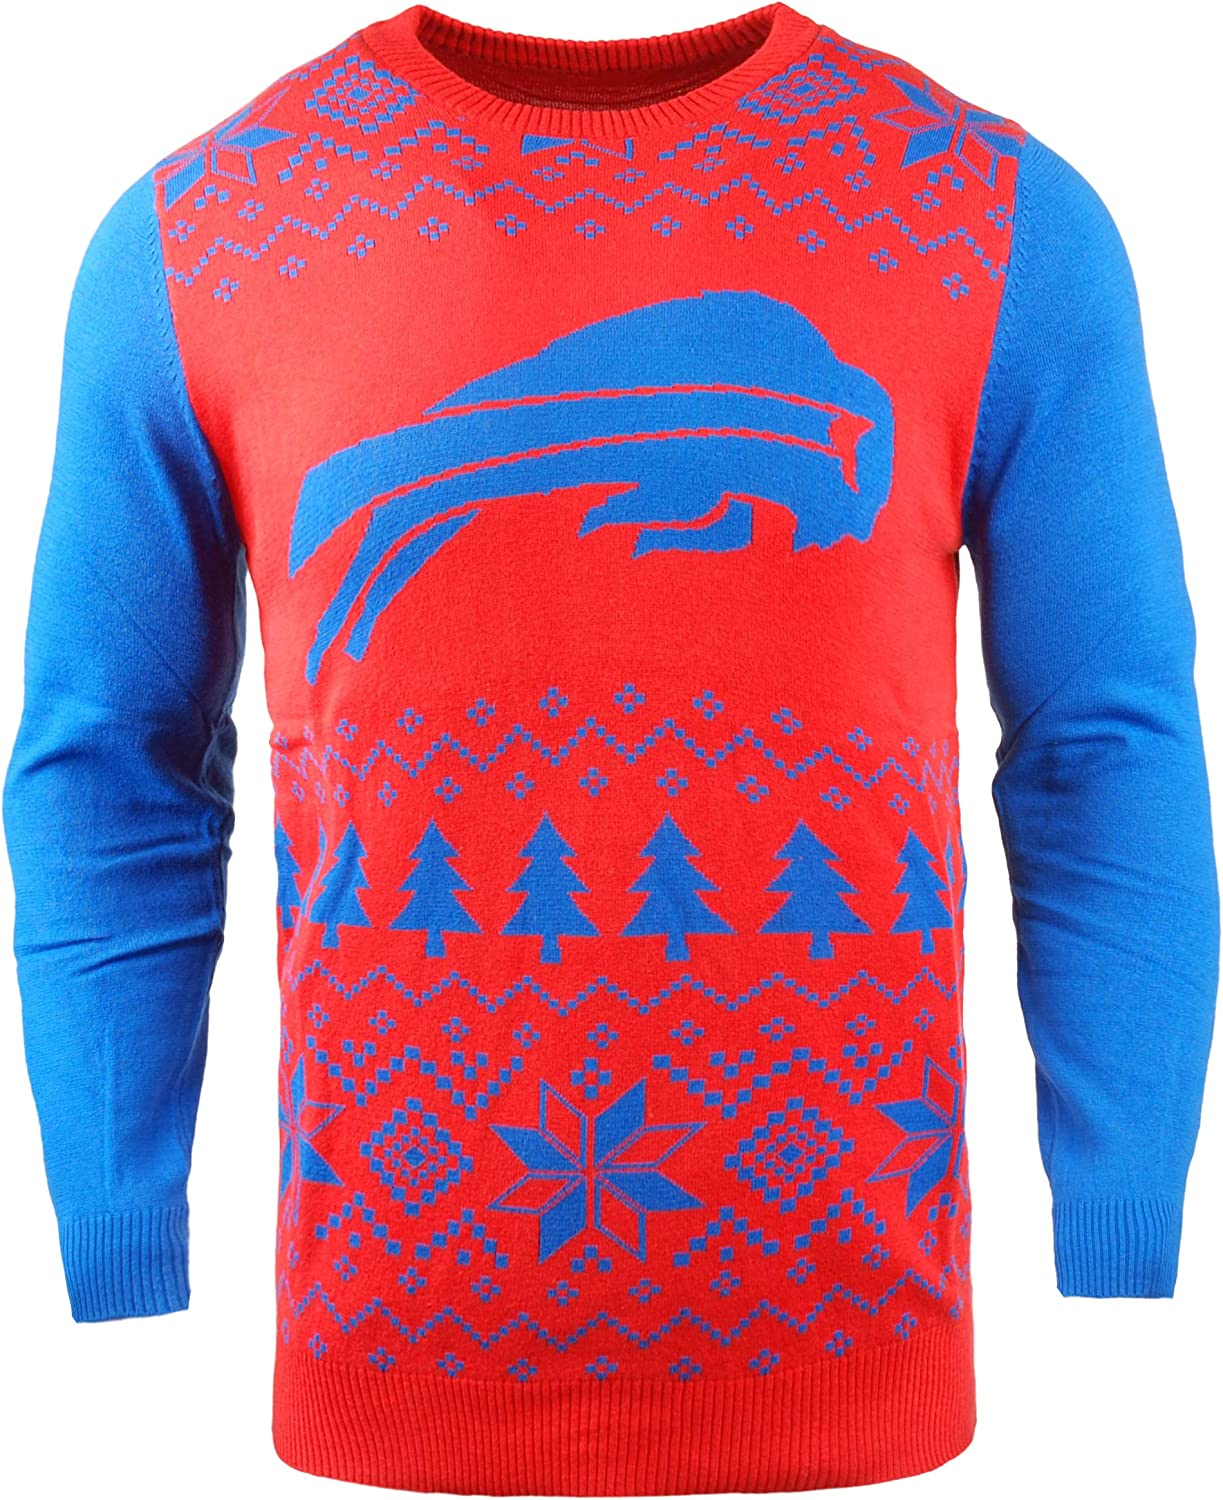 NFL Two-Tone Cotton Ugly Sweater